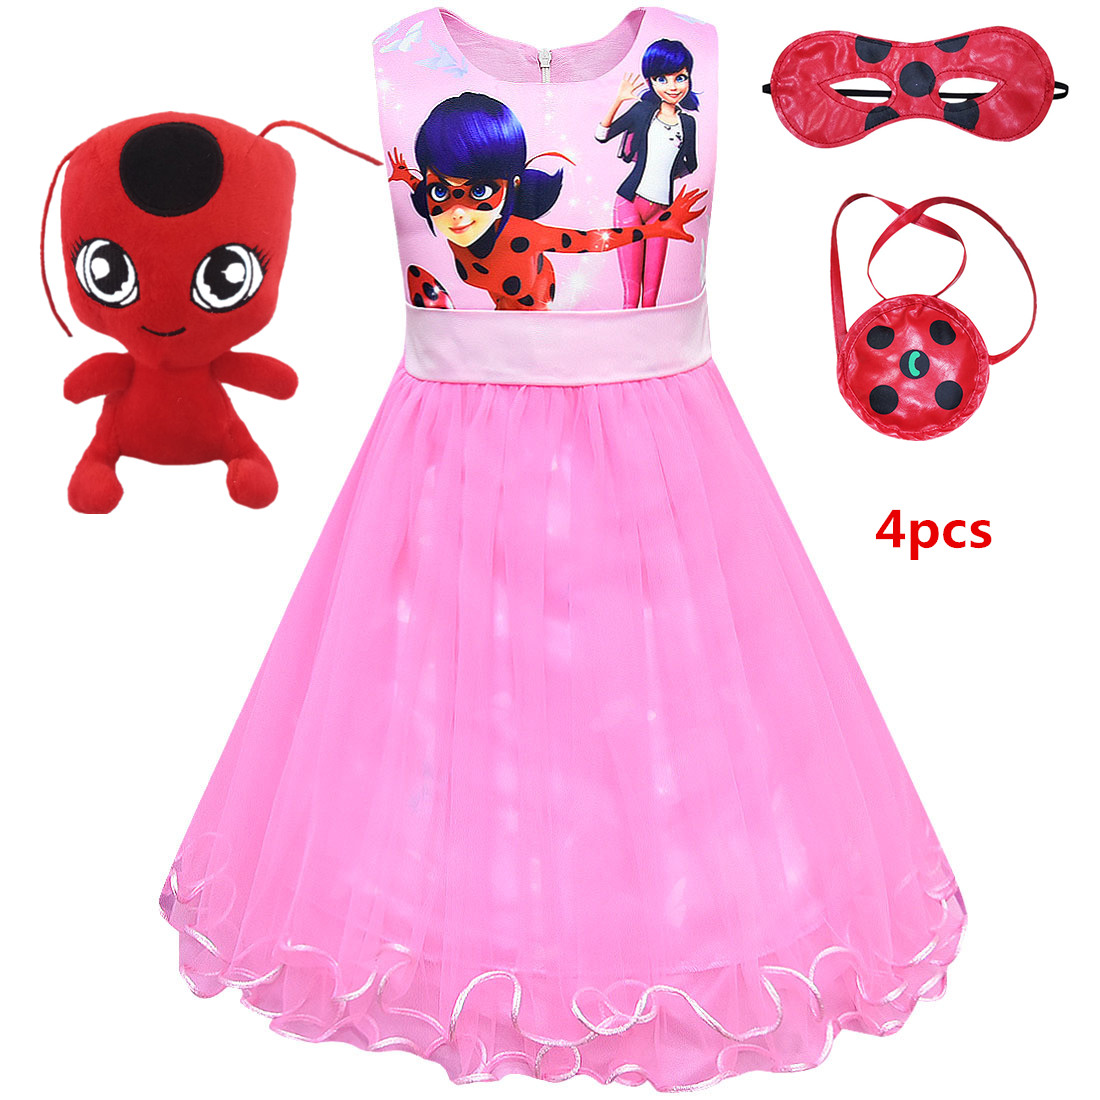 2019 GIRL/'S CLOTHING Summer Sleeveless Lol Doll Party Birthday Tailored Dress #